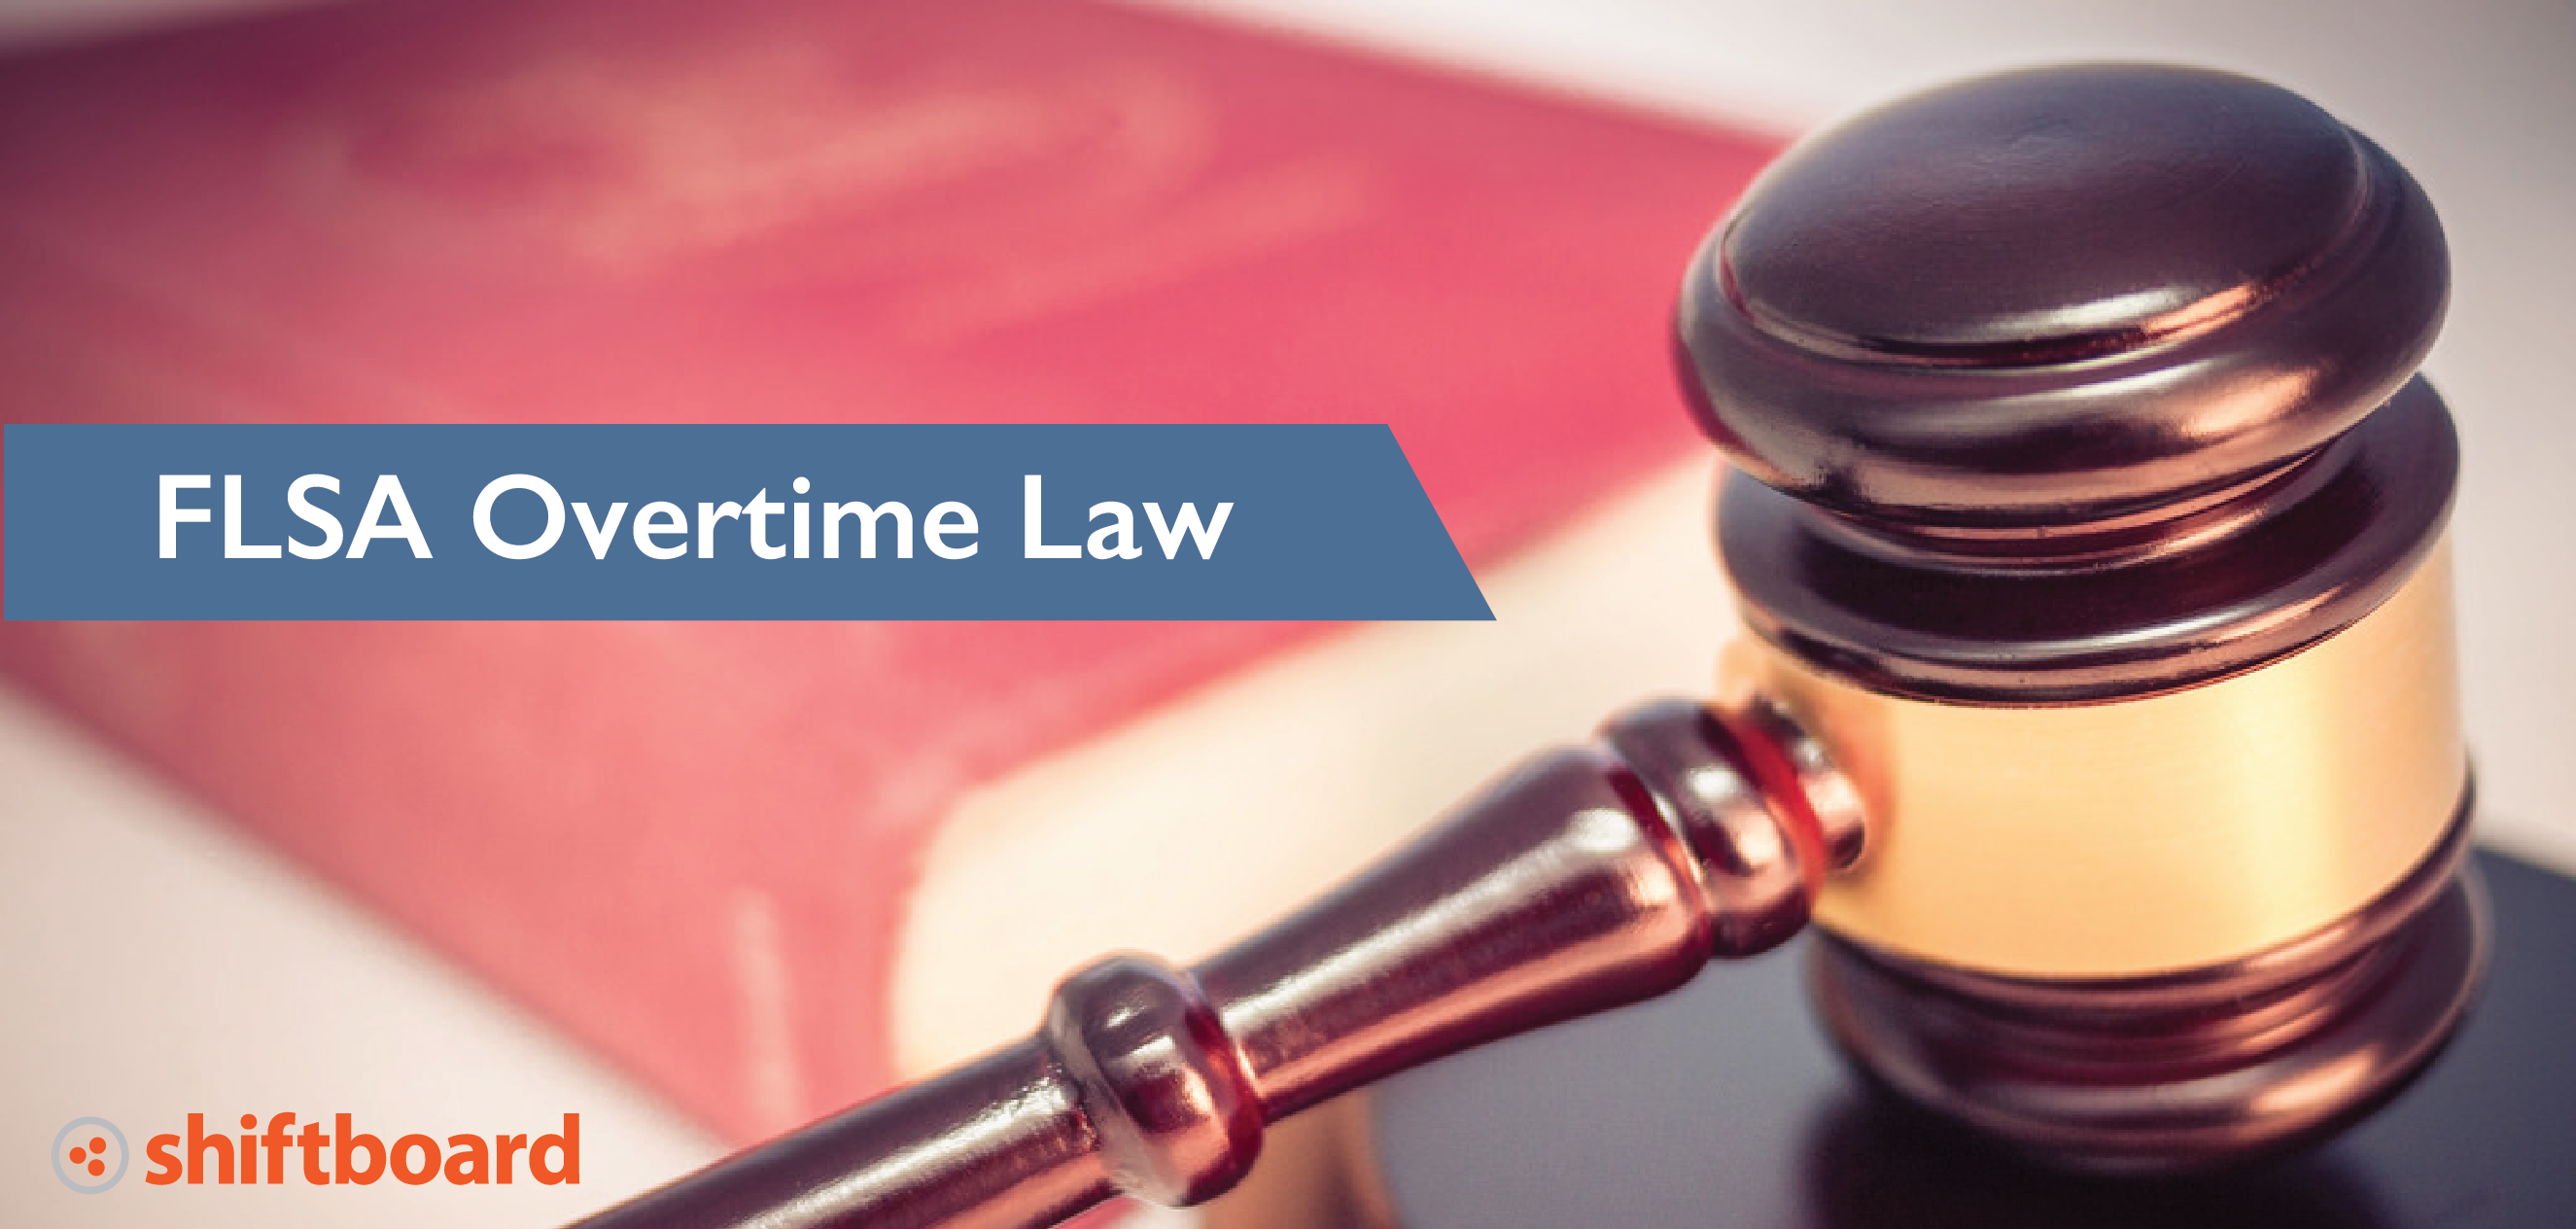 FLSA Overtime Rule Update: 5 Things You Should Know